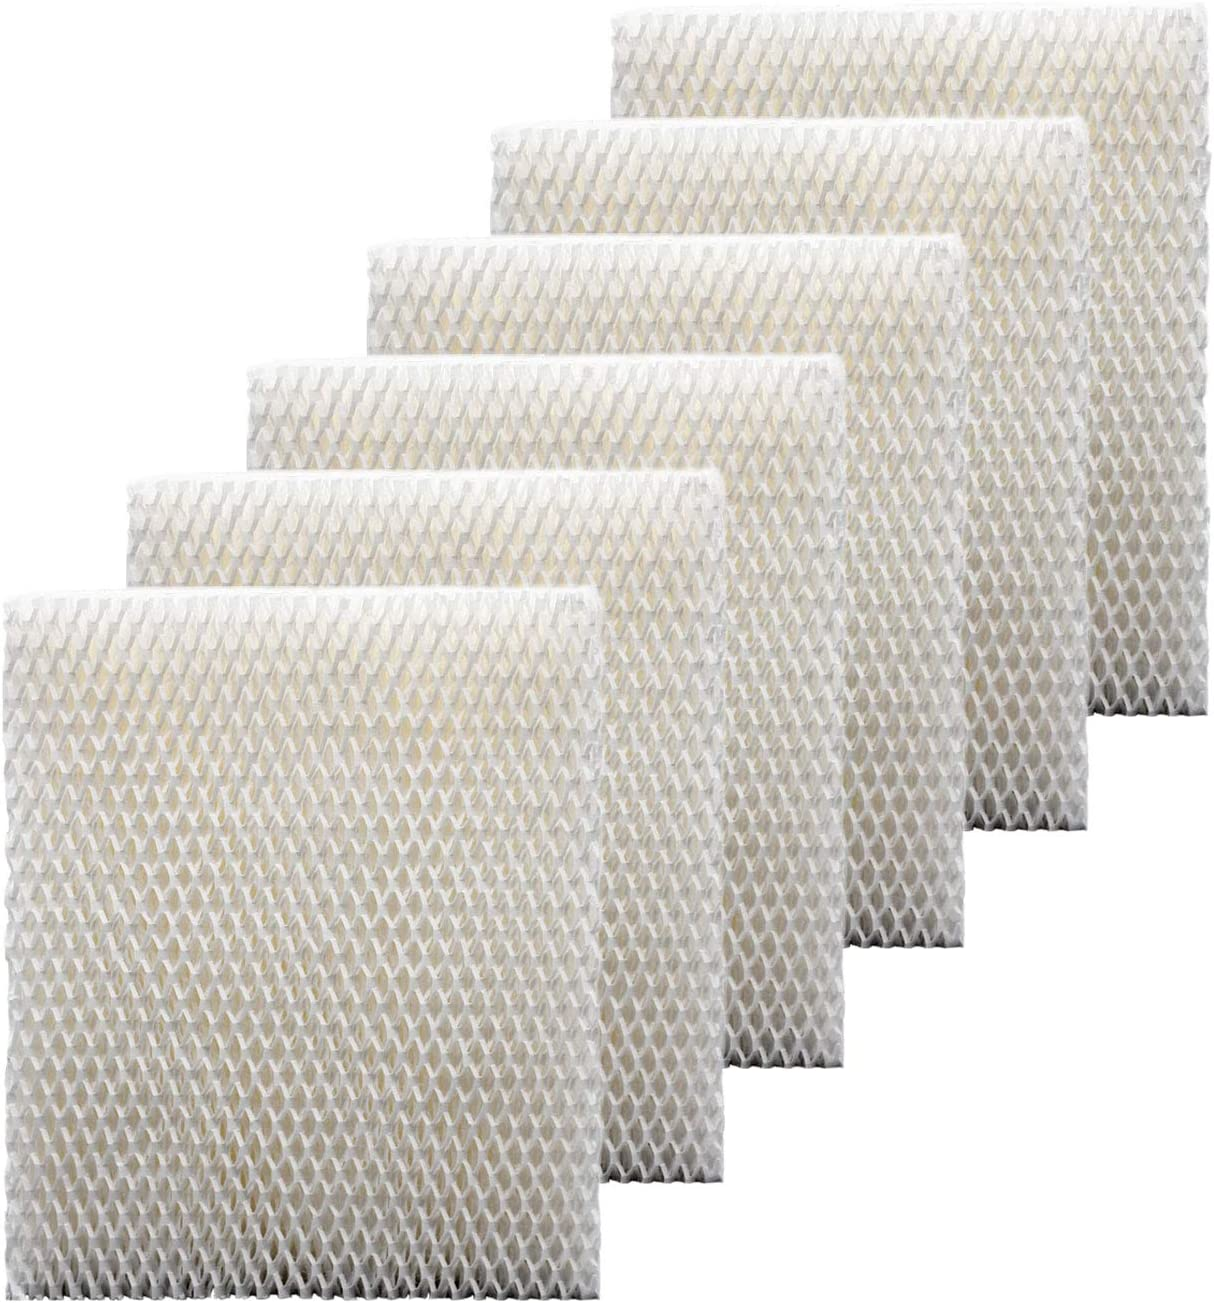 Colorfullife 6 Pack Humidifier Wicking Filter T for Honeywell Top Fill Tower Humidifier HEV615, HEV620, Replacement Filter T, Replace Part HFT600T HFT600PDQ